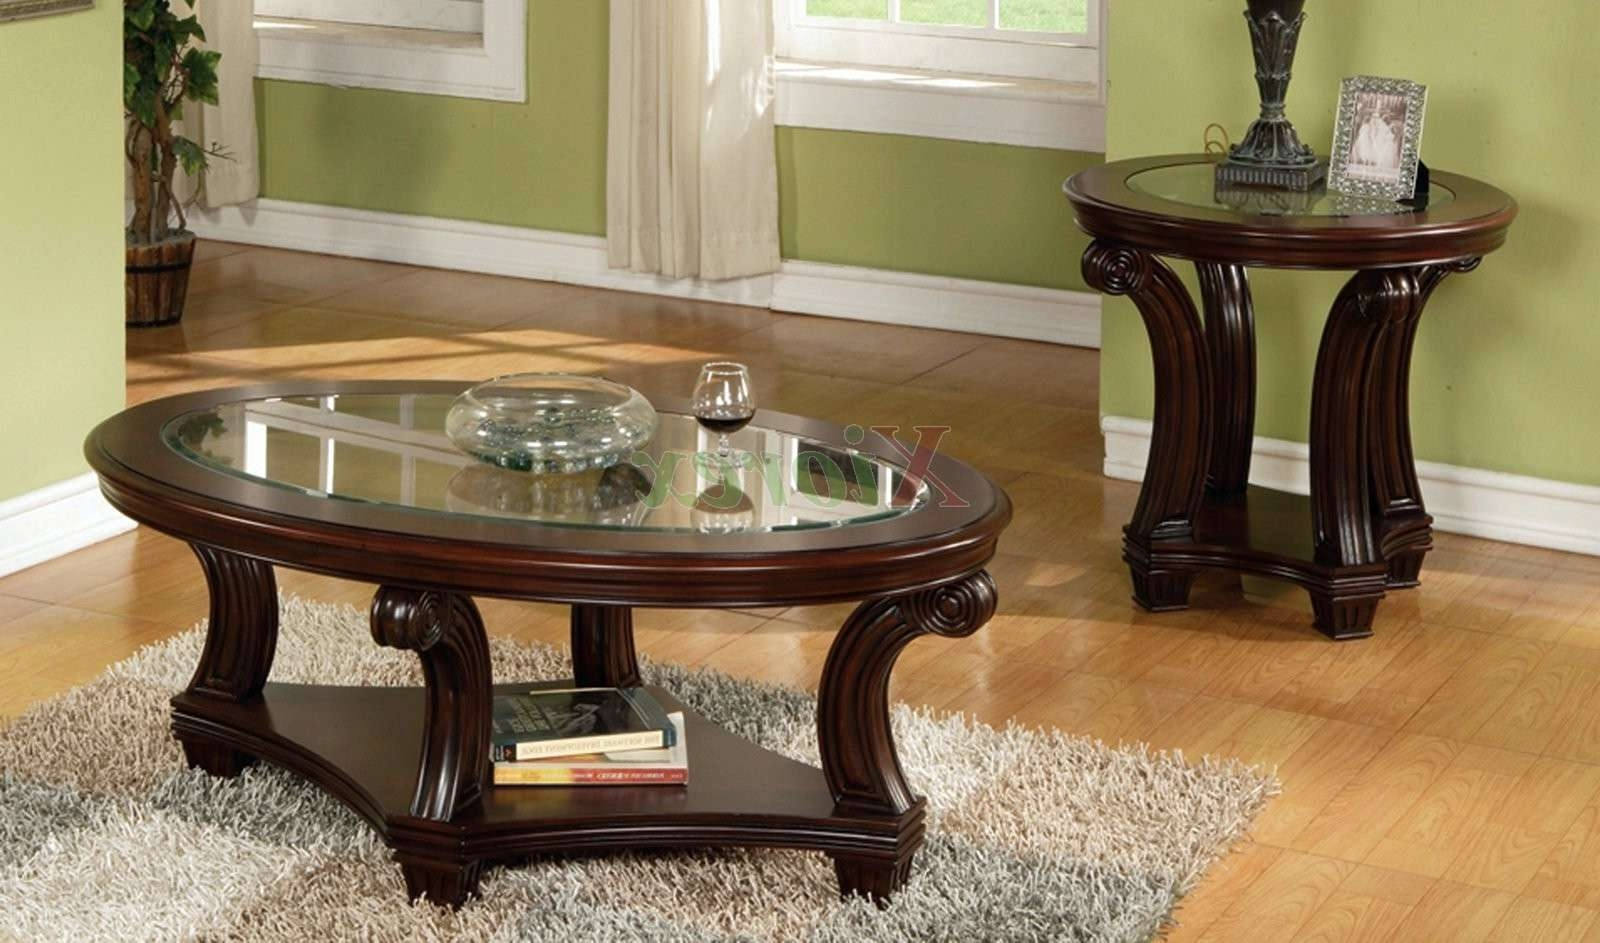 Coffee Tables Ideas: Awesome Wood Coffee Table Sets Cheap Wooden Regarding 2018 Cherry Wood Coffee Table Sets (View 14 of 20)